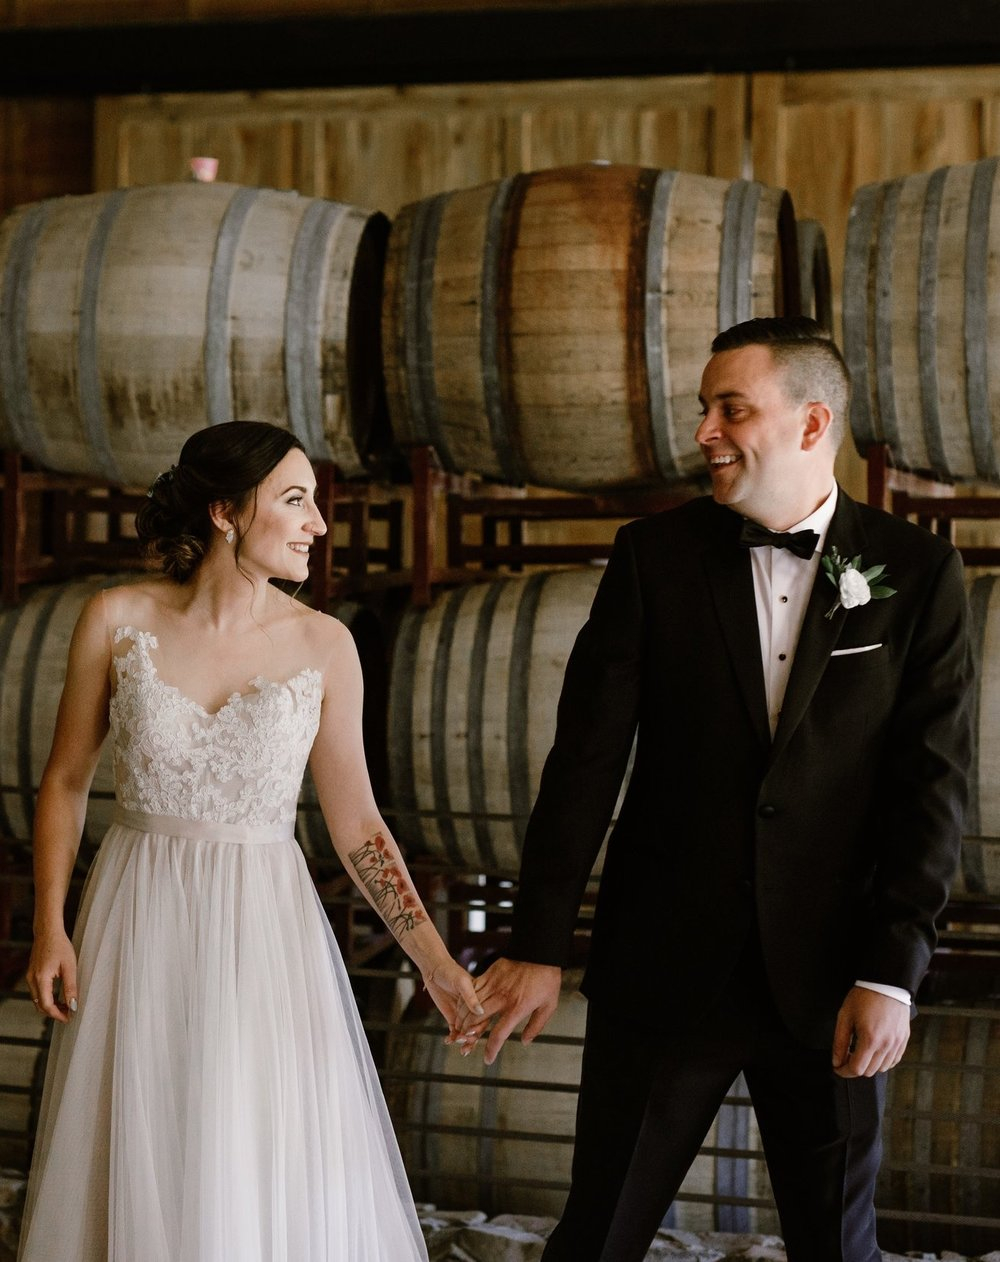 Portland_wedding_planner_maysara_winery_01.jpg